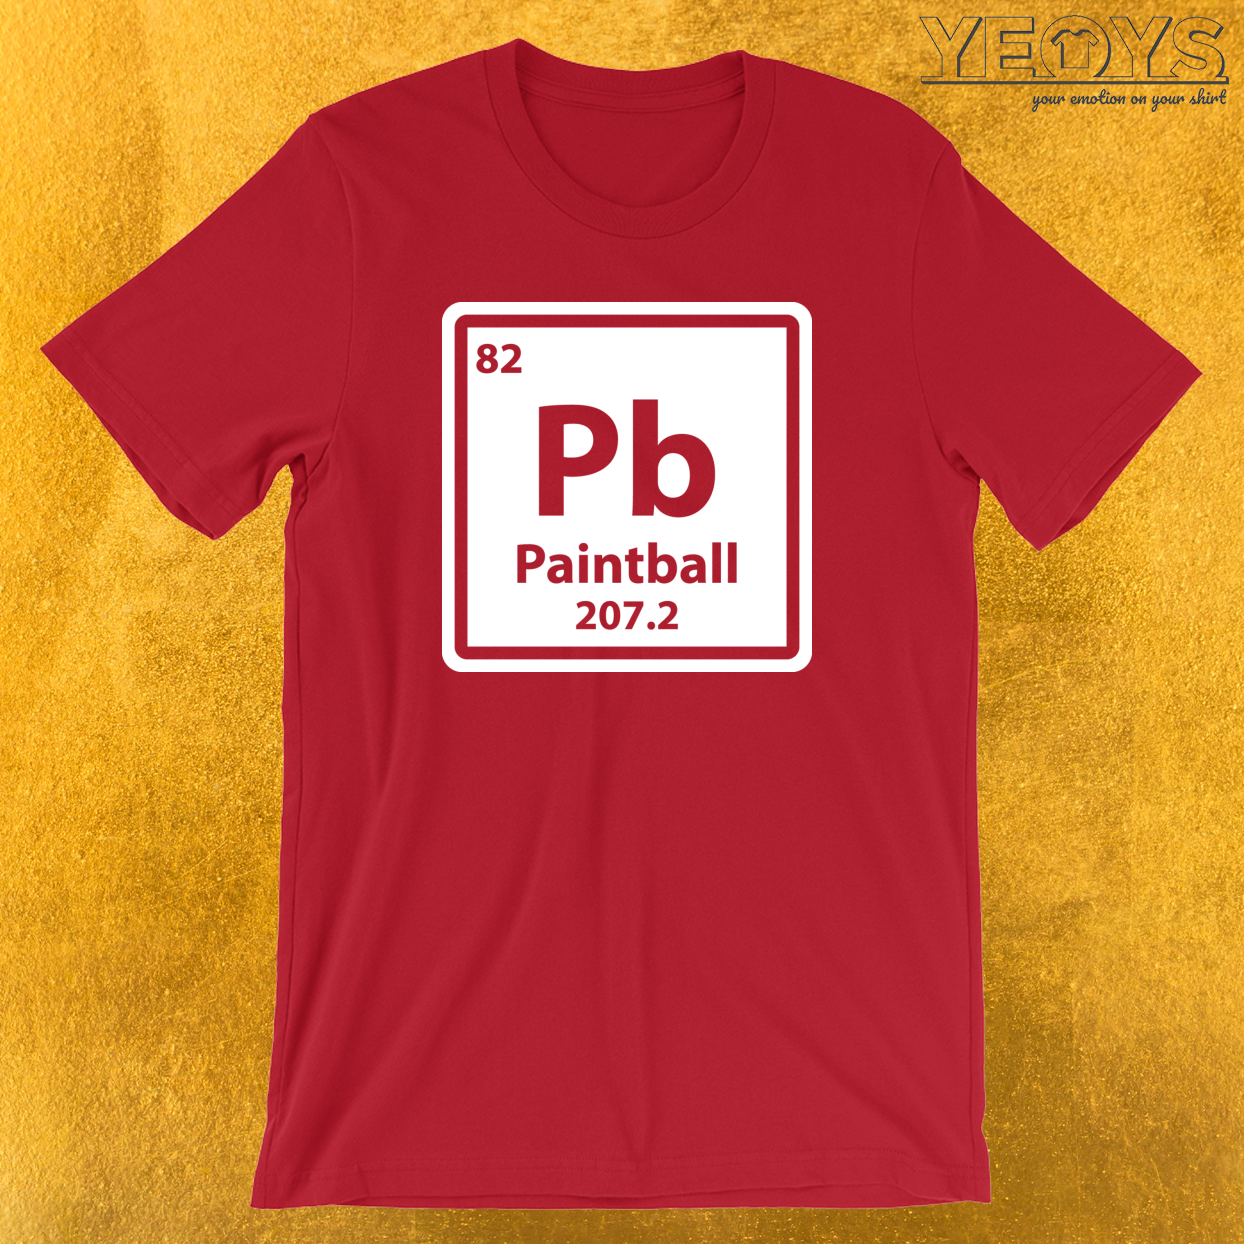 Periodic Table Pb Paintball T-Shirt